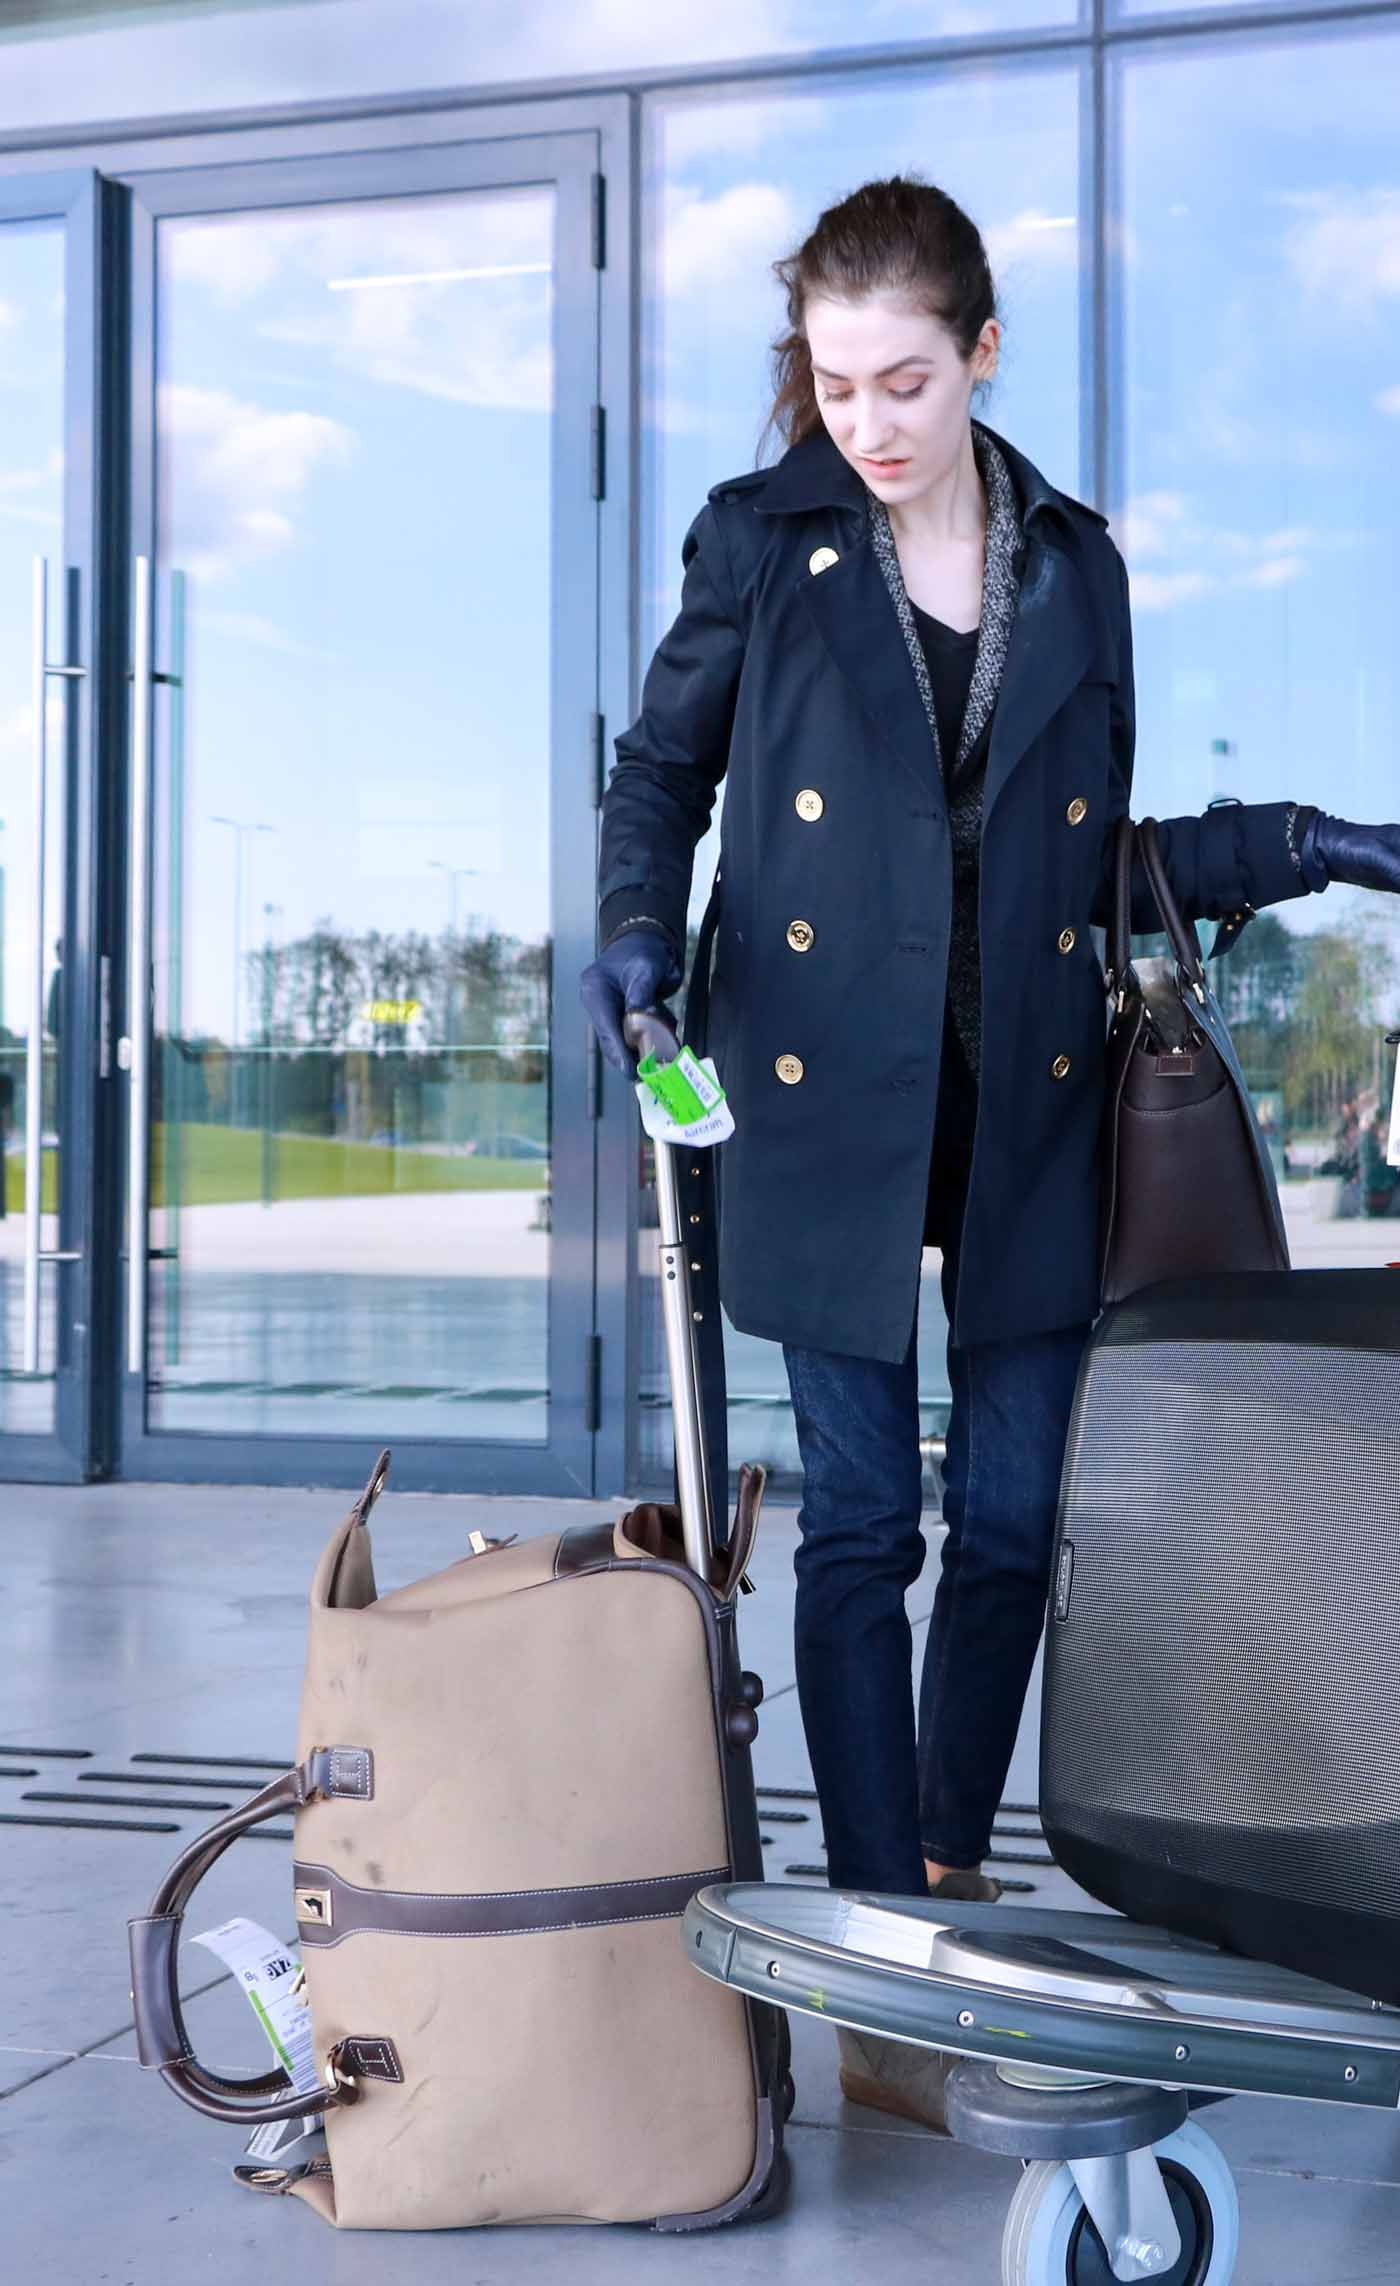 Fashion Blogger Veronika Lipar of Brunette from Wall Street wearing trench coat, jeans and Michael Kors Selma Bag tote at the airport